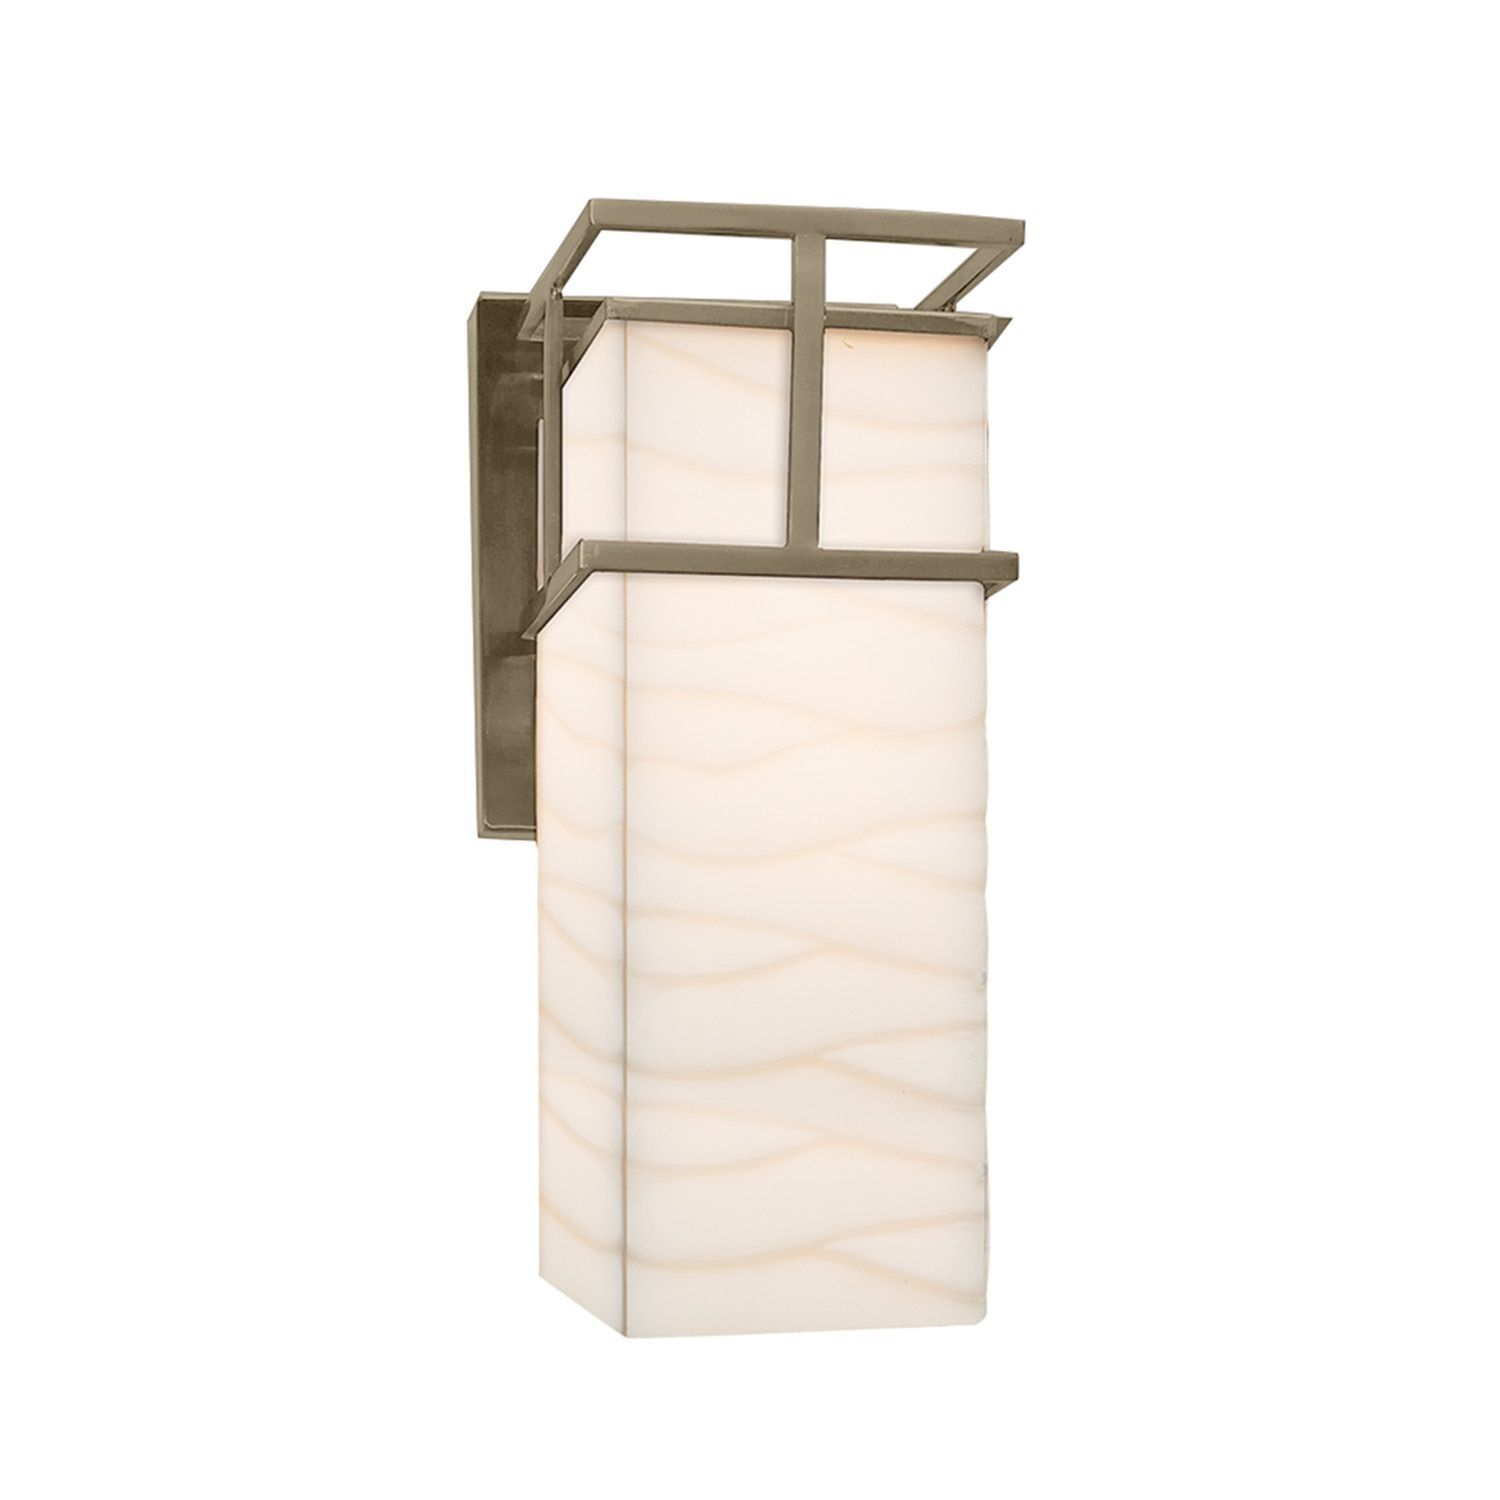 Justice design group porcelina structure nickel outdoor large wall